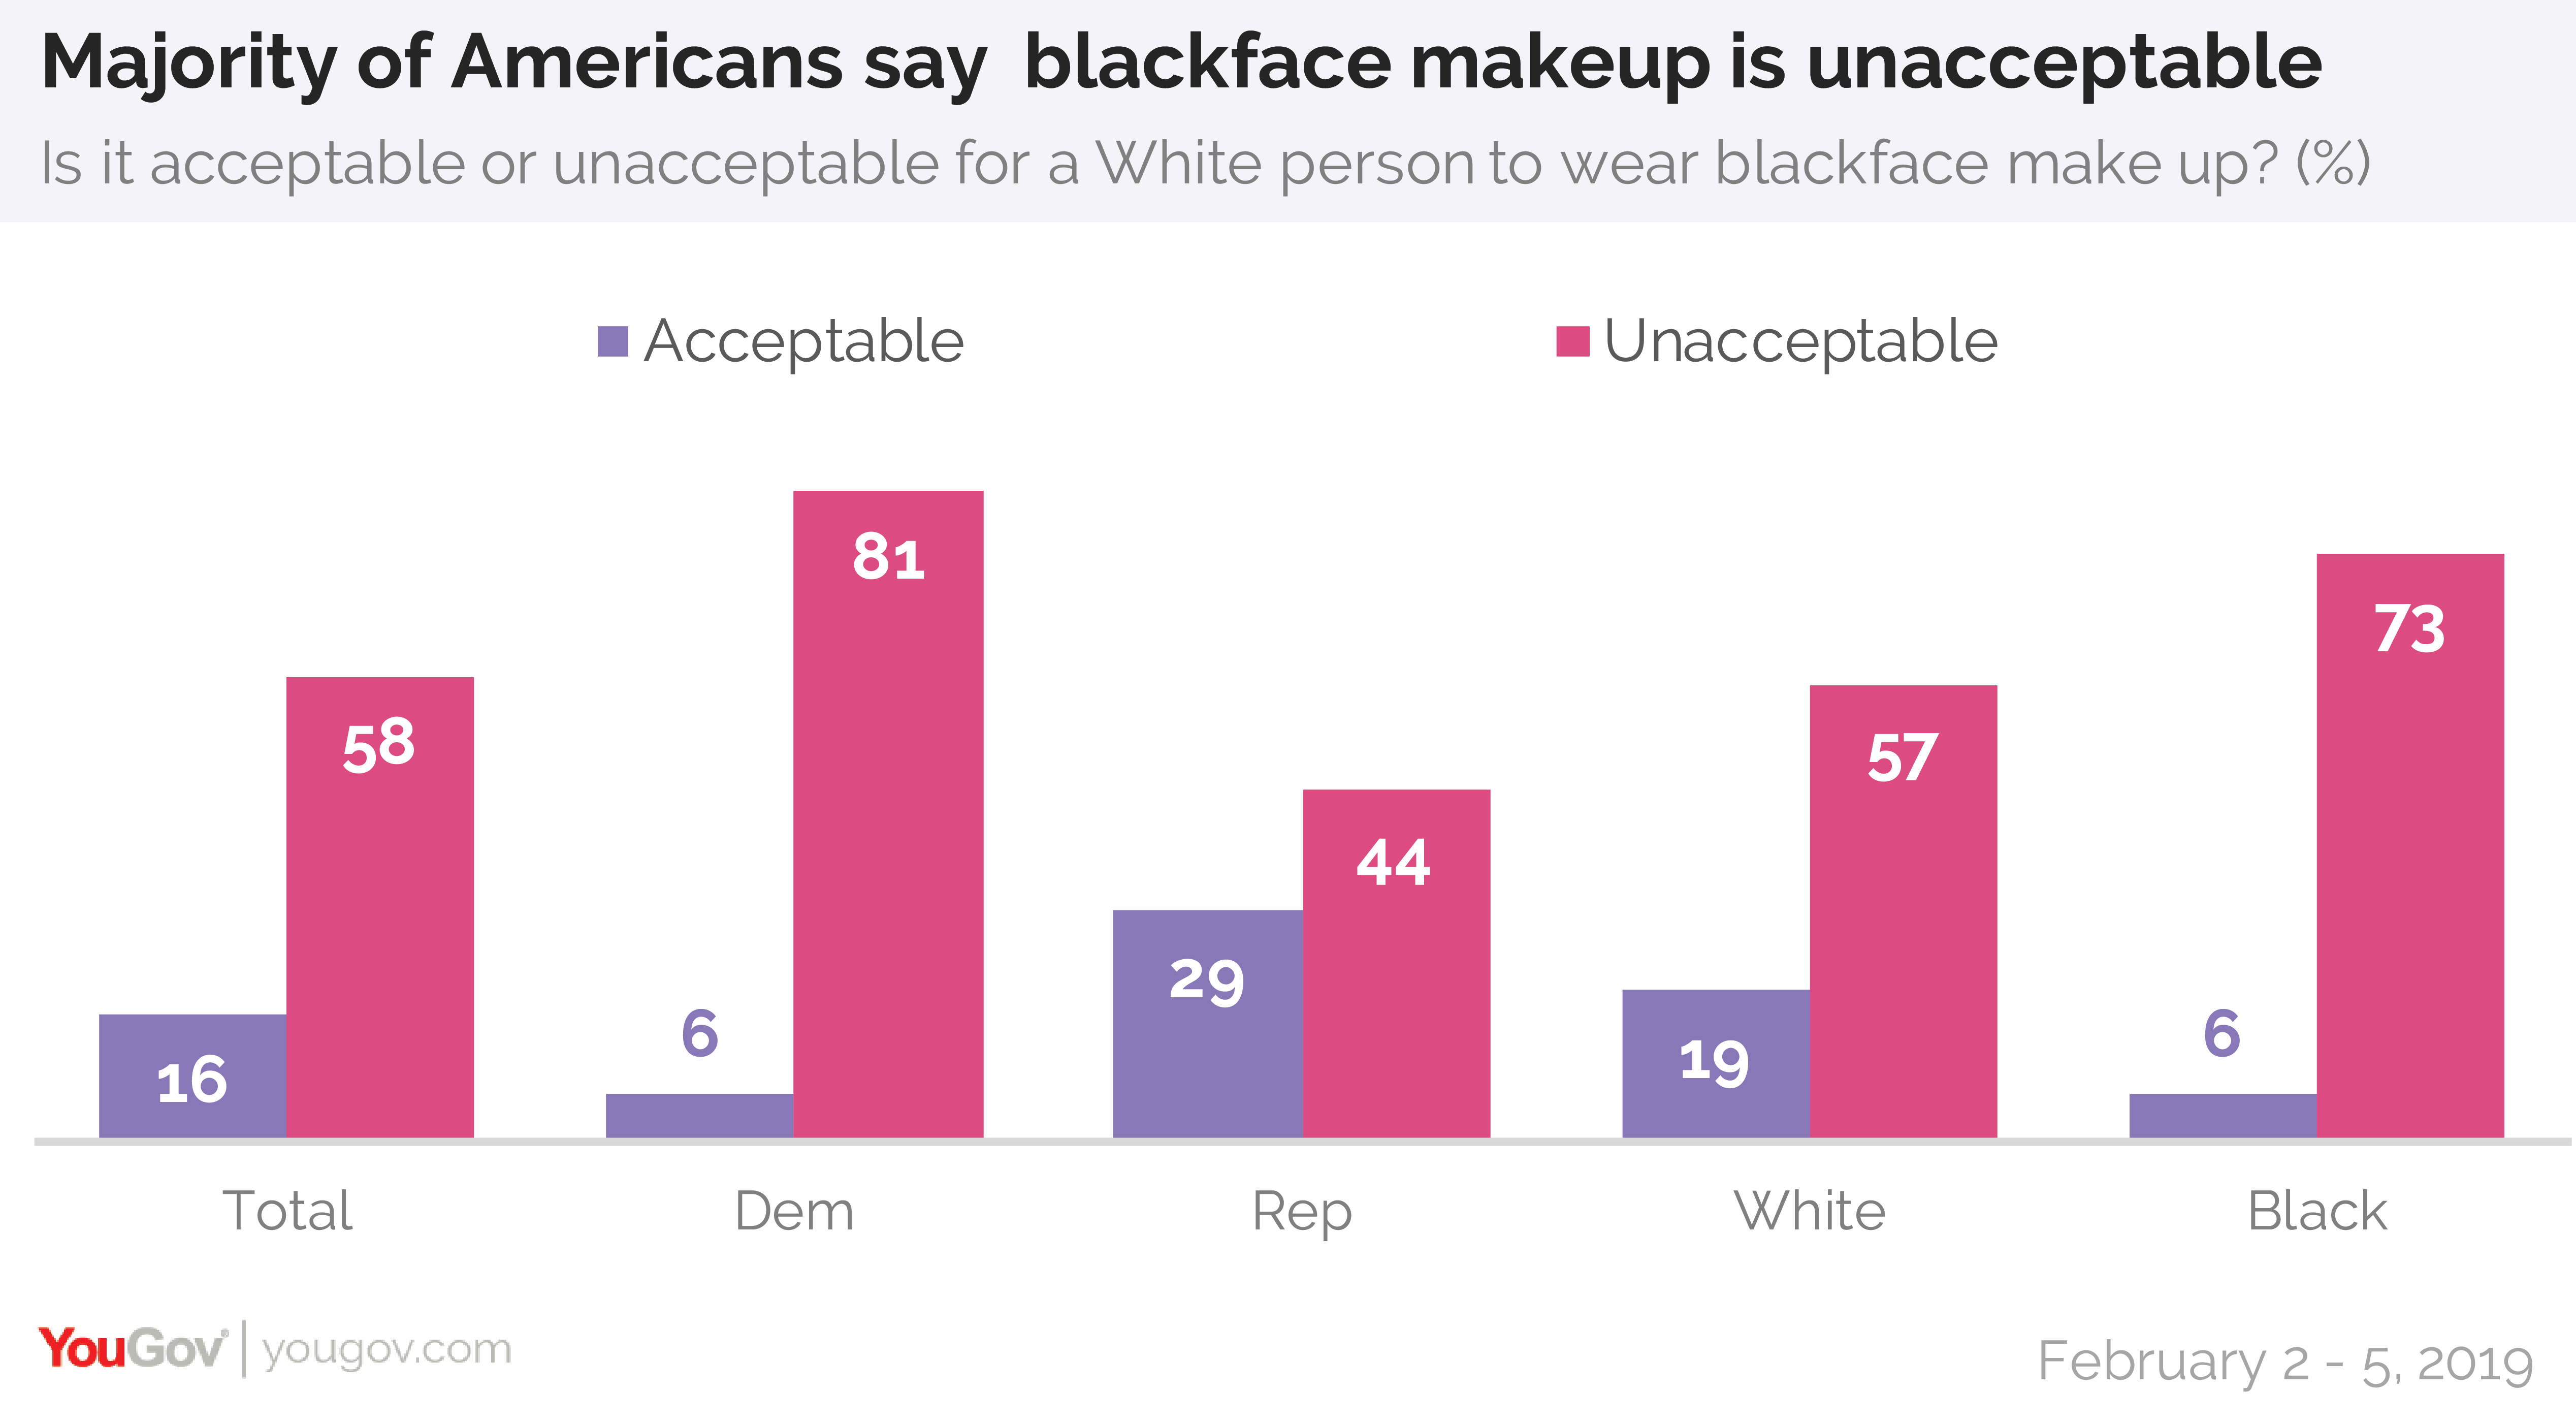 Majority of Americans say wearing blackface makeup is unacceptable